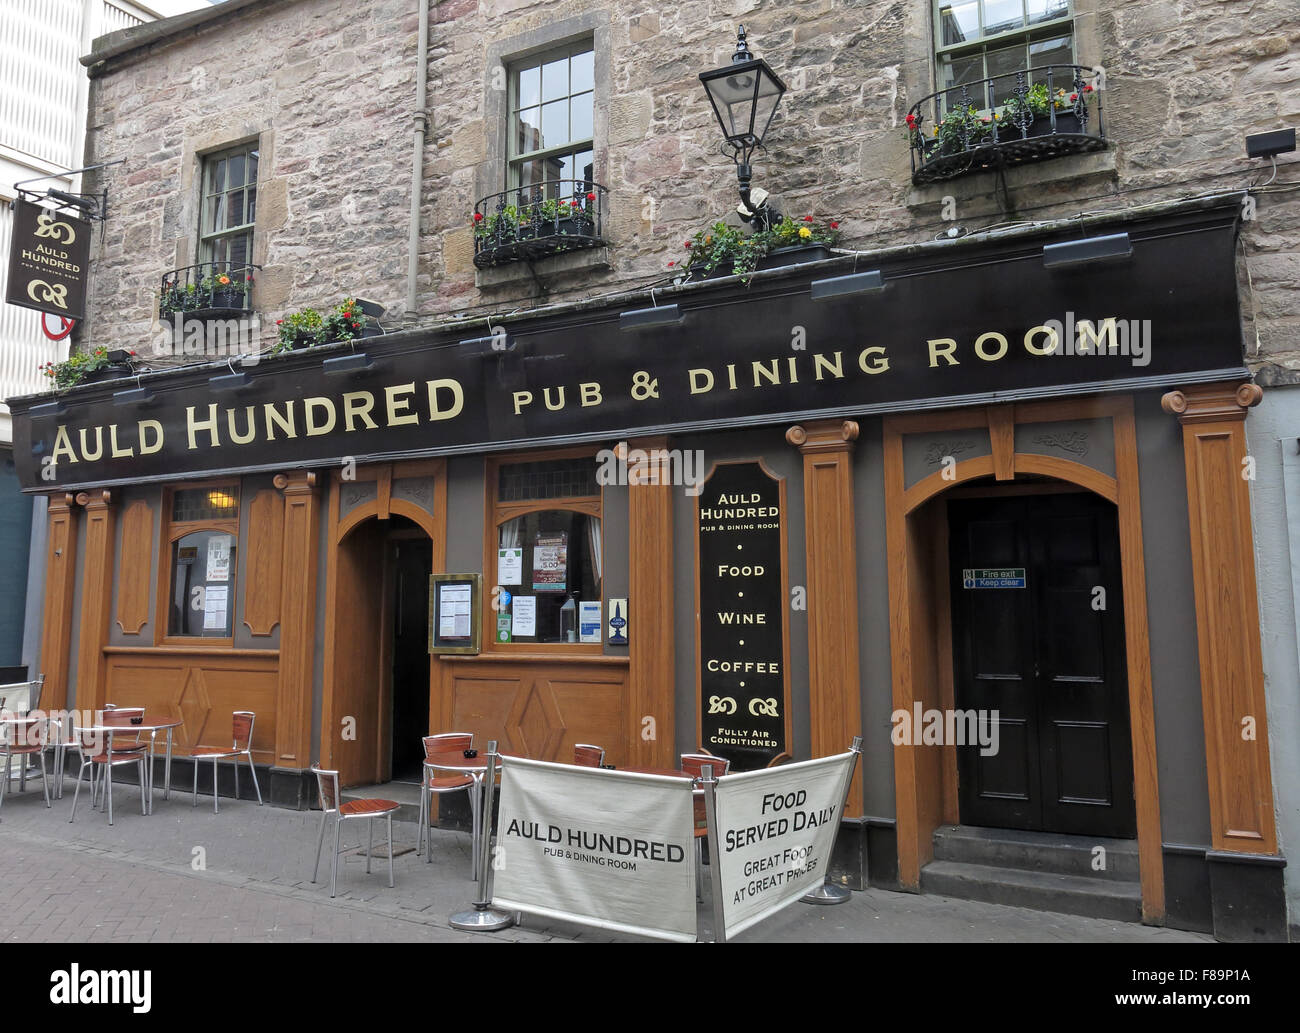 Auld Hundred Pub & dining Room, Rose St,Edinburgh City Centre,Scotland,UK - Stock Image